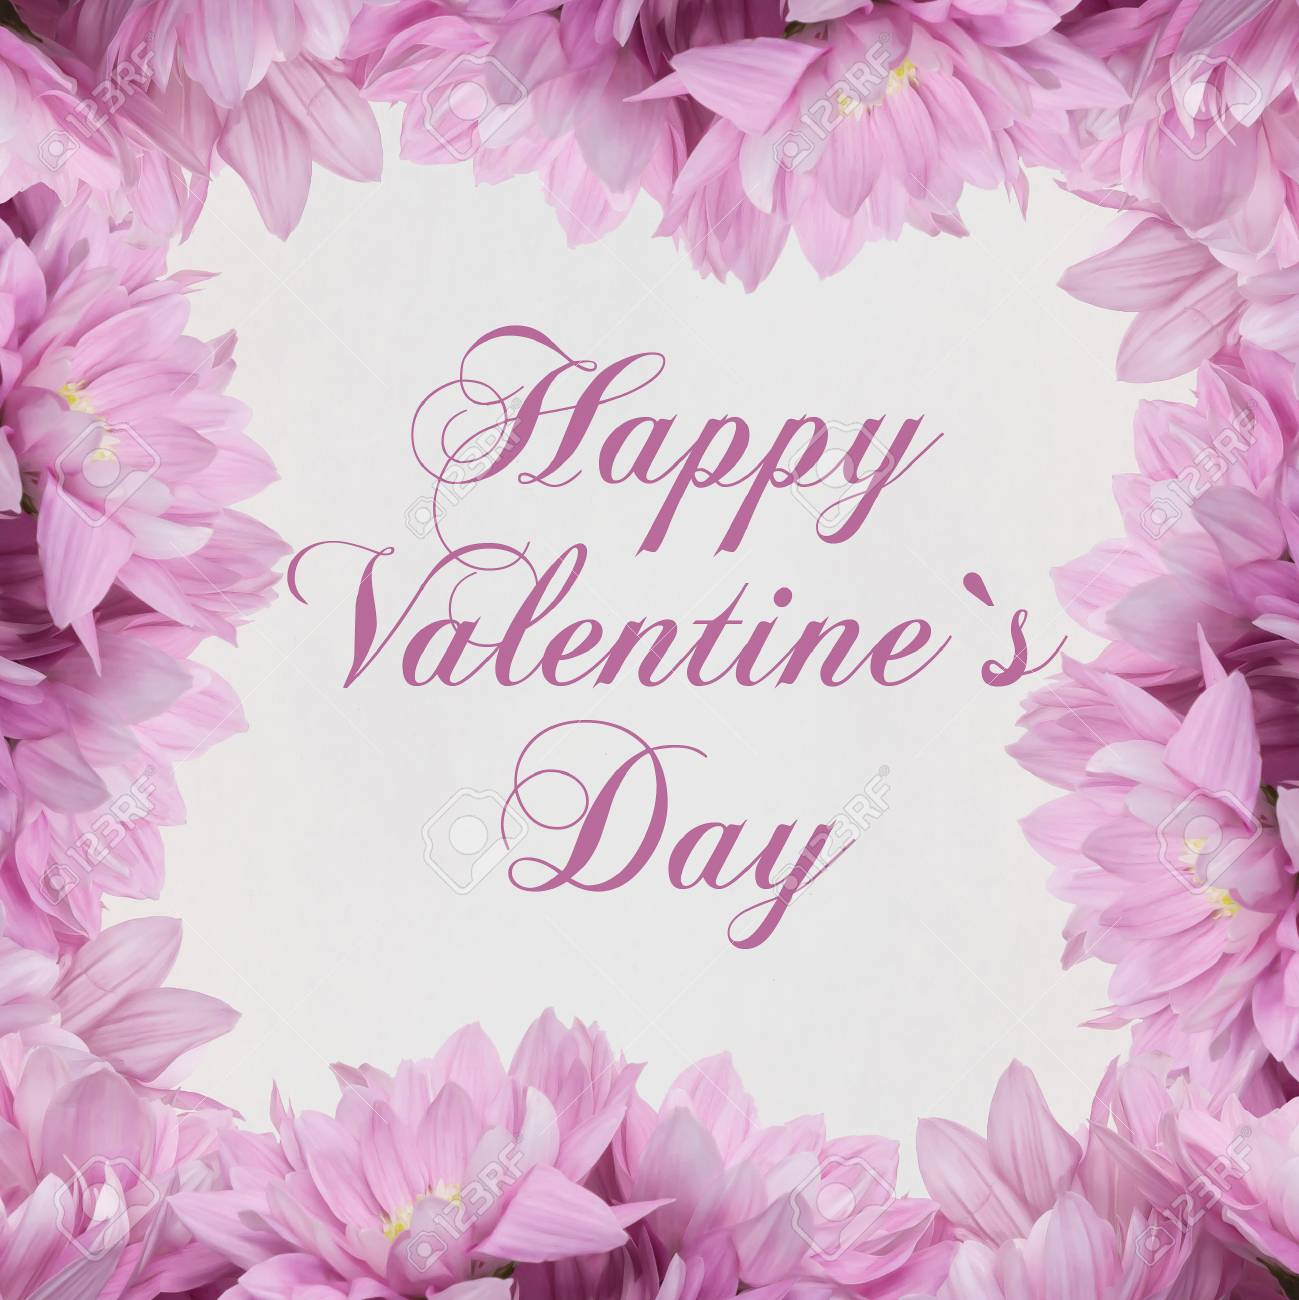 Happy Valentines Day Flower Card Stock Photo Picture And Royalty